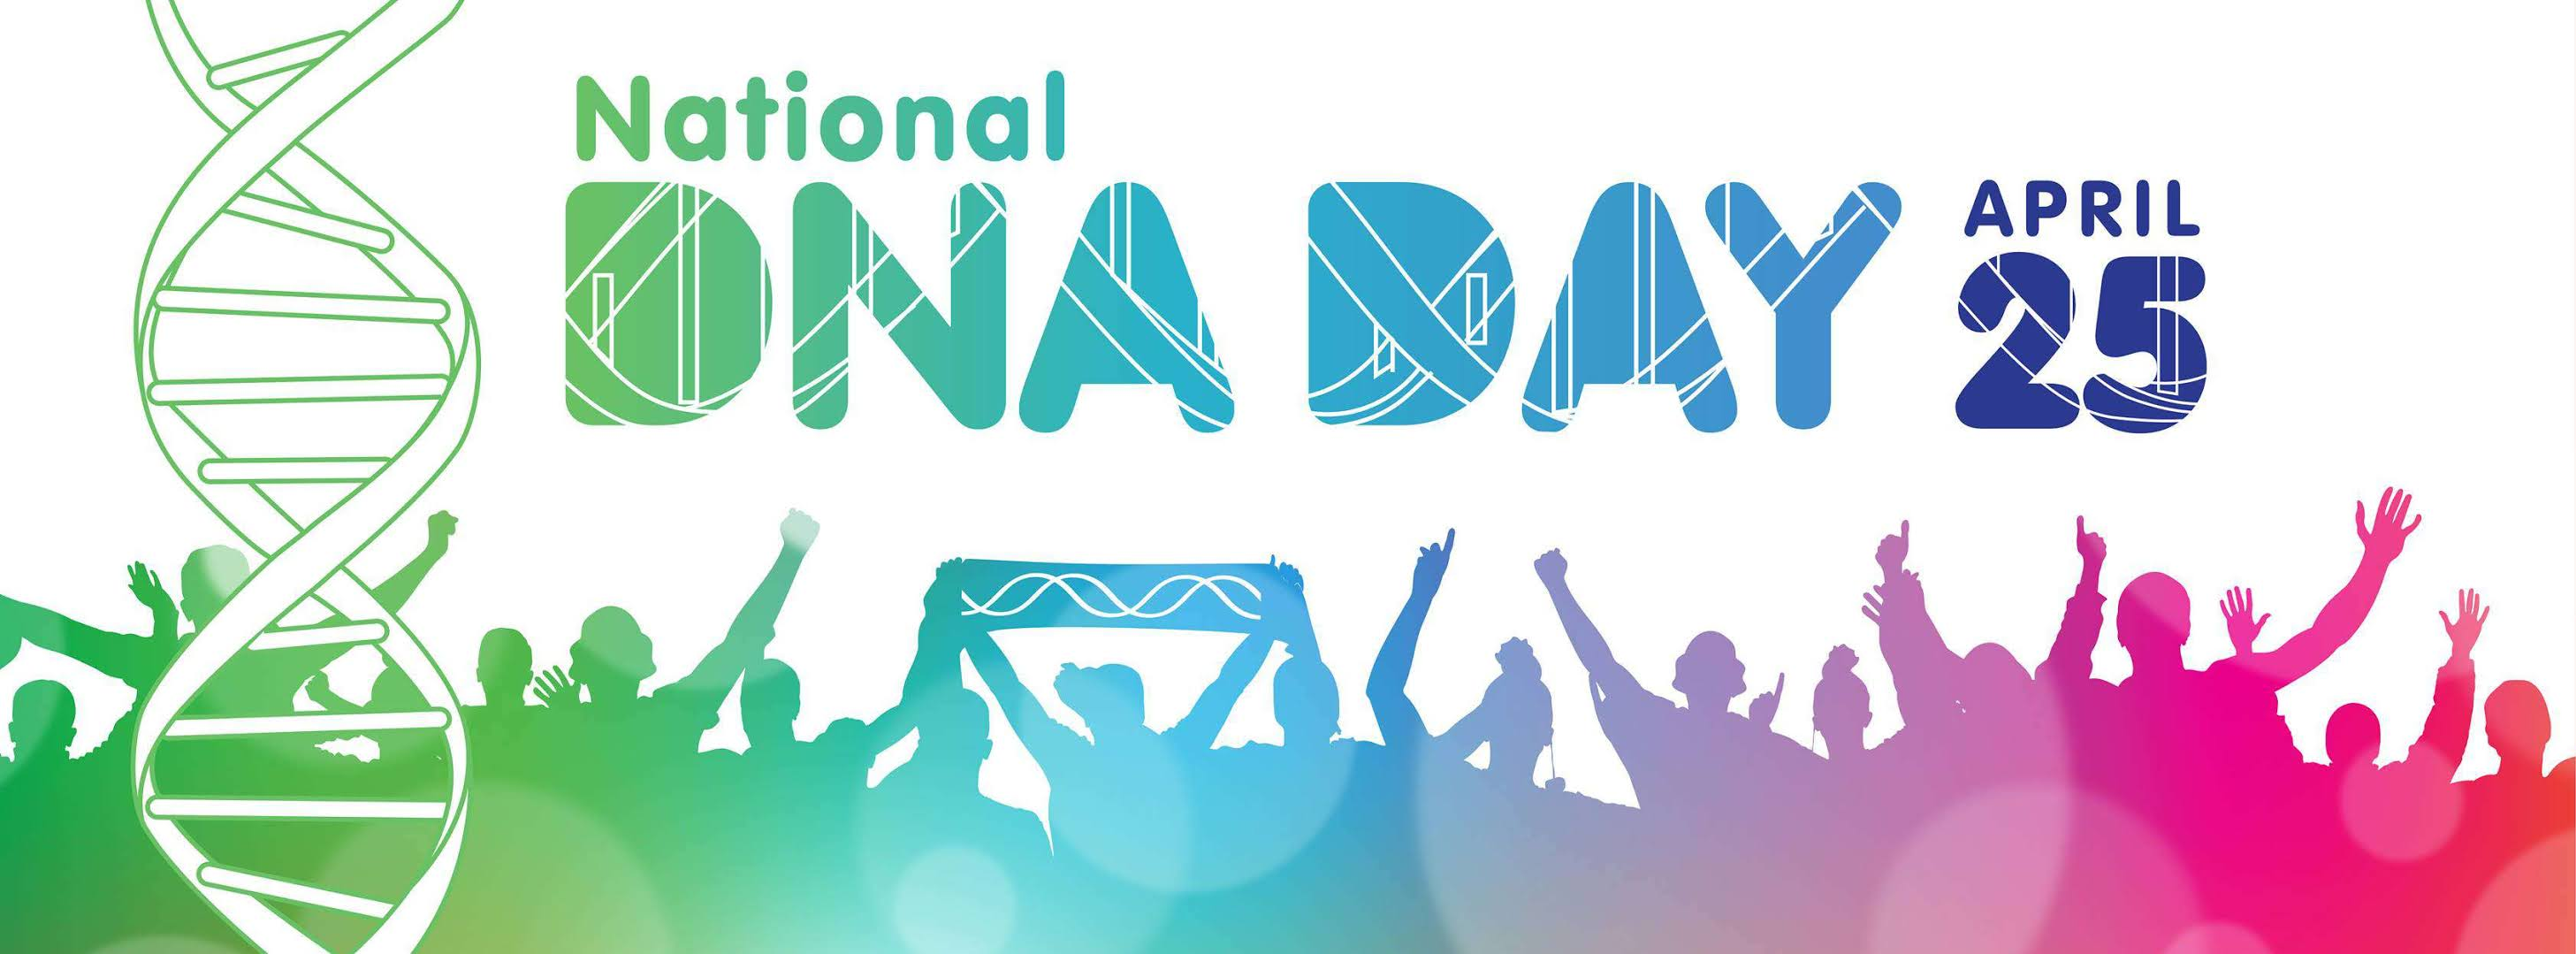 National DNA Day Wishes pics free download